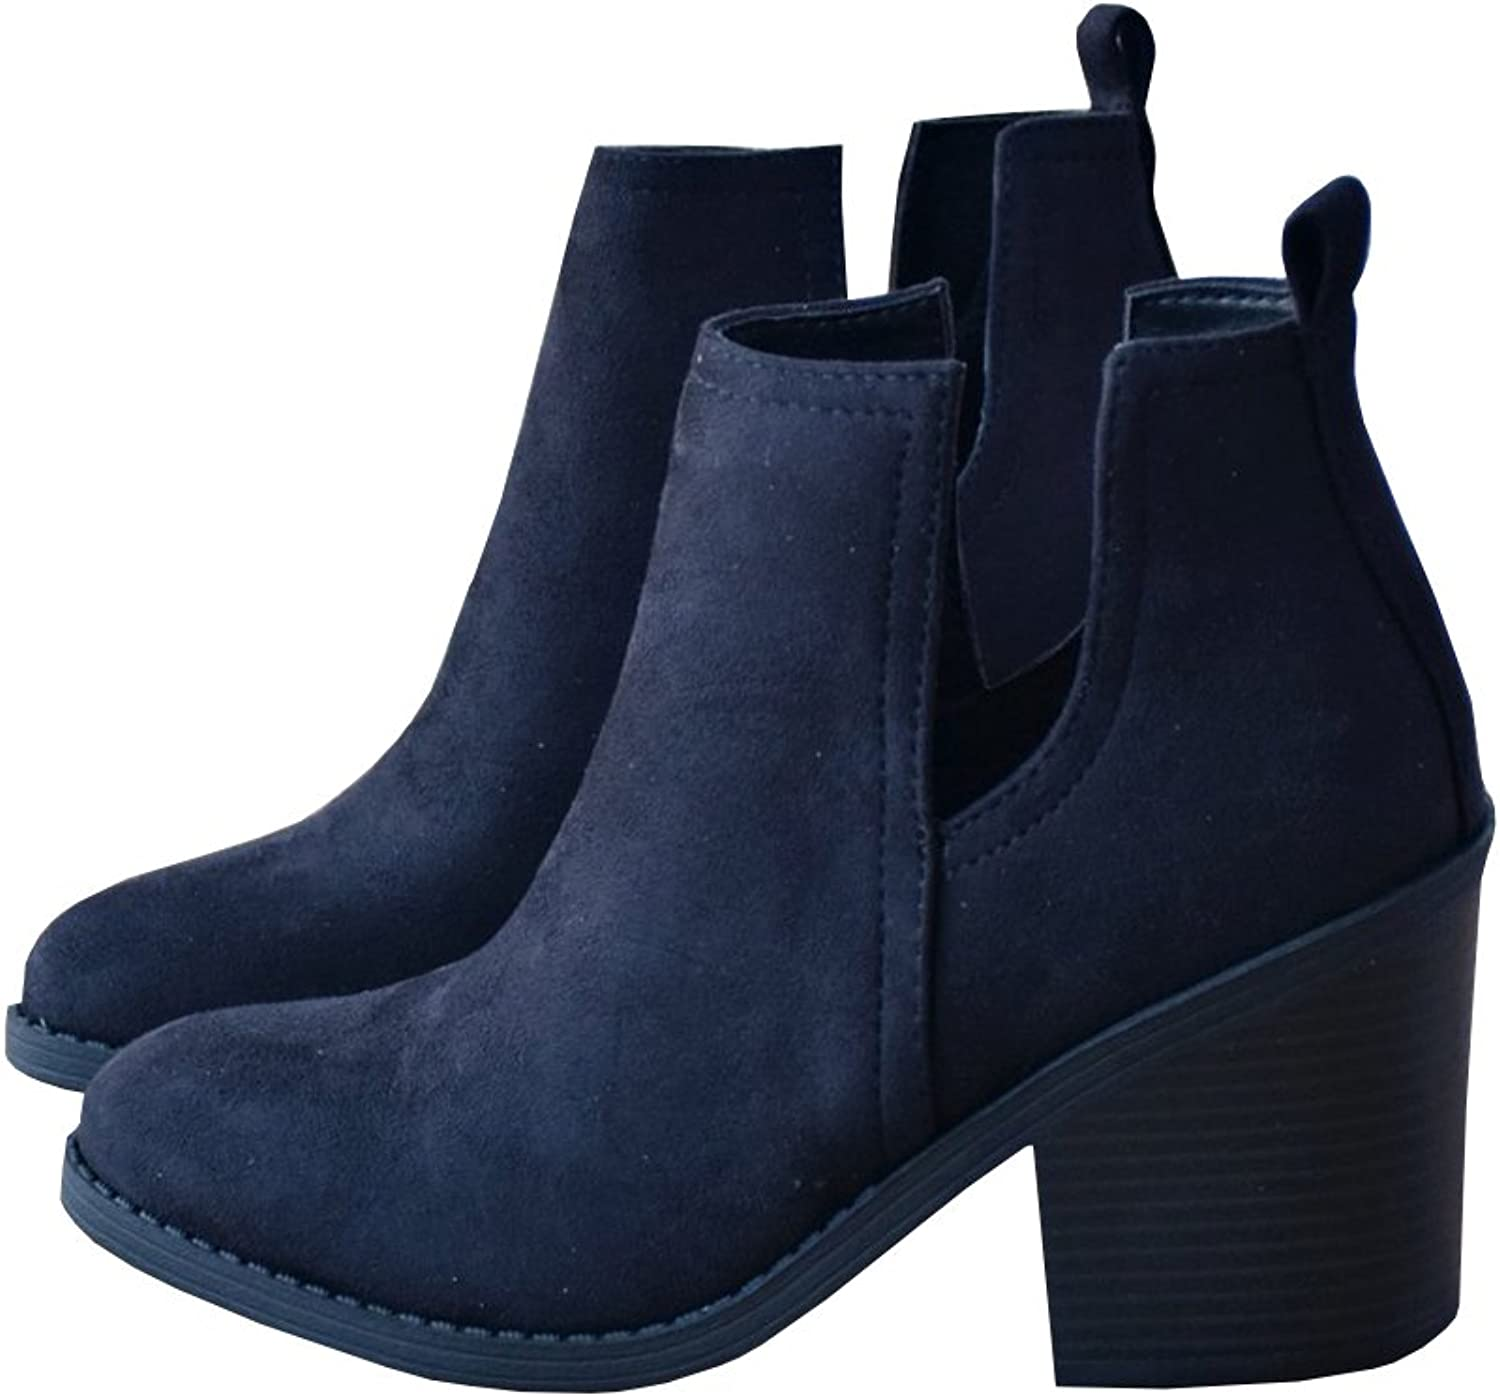 Nulibenna Womens Casual Pointed Toe Slip On Side Cut Out Low Heel Western Ankle Booties